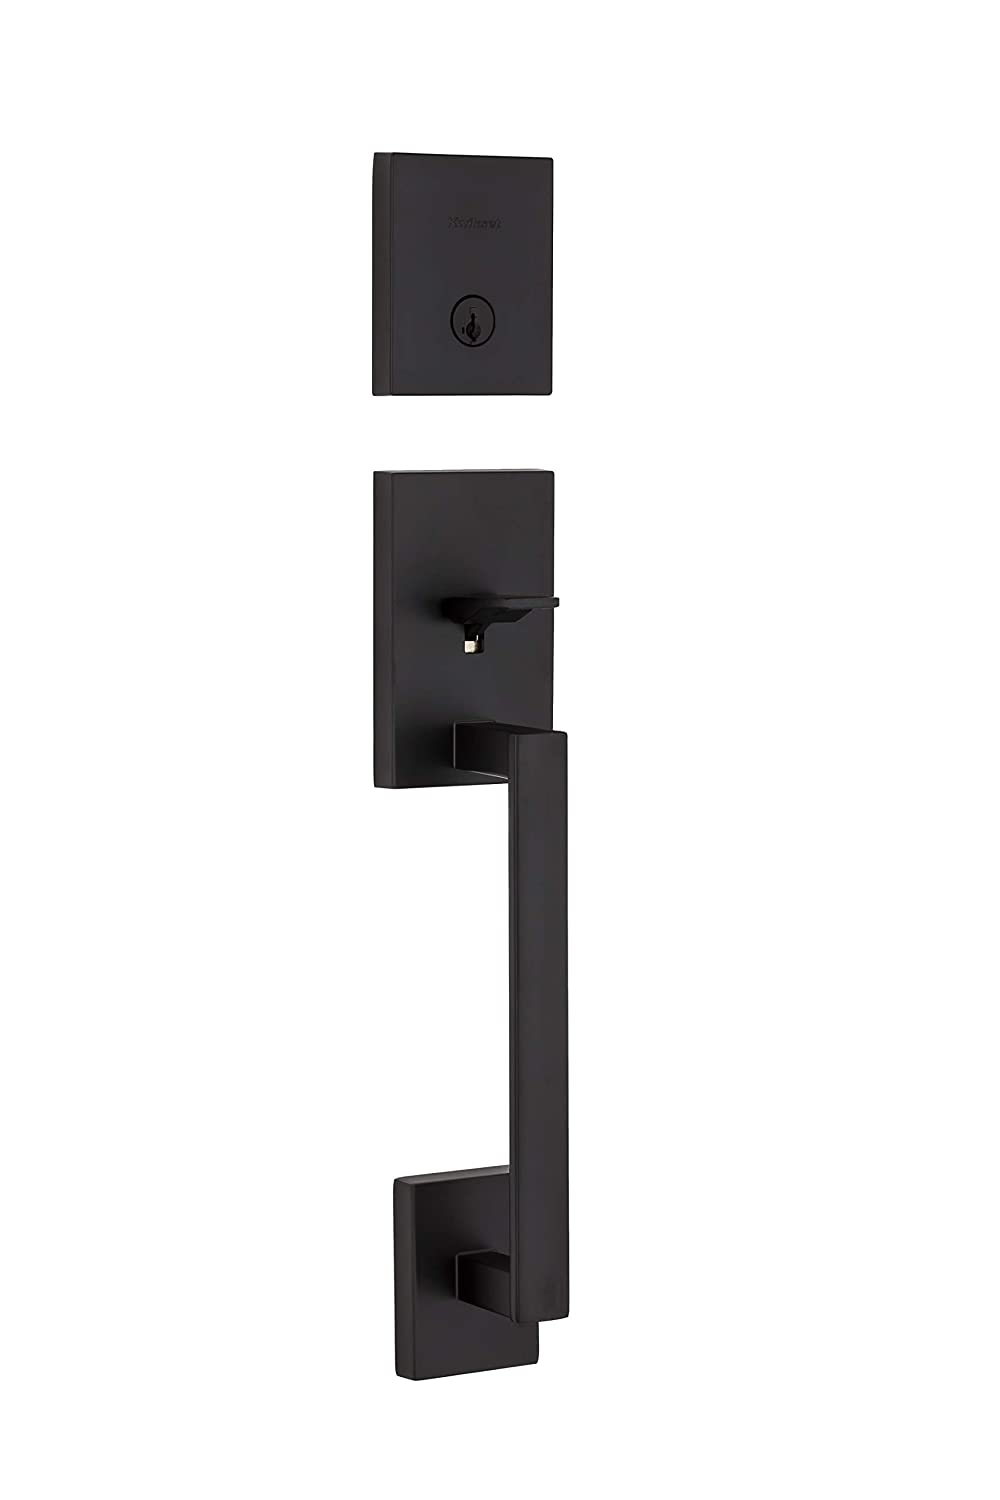 Kwikset San Clemente 98180-007 Single Cylinder Low Profile Deadbolt Exterior Only Handleset Featuring SmartKey In Iron Black